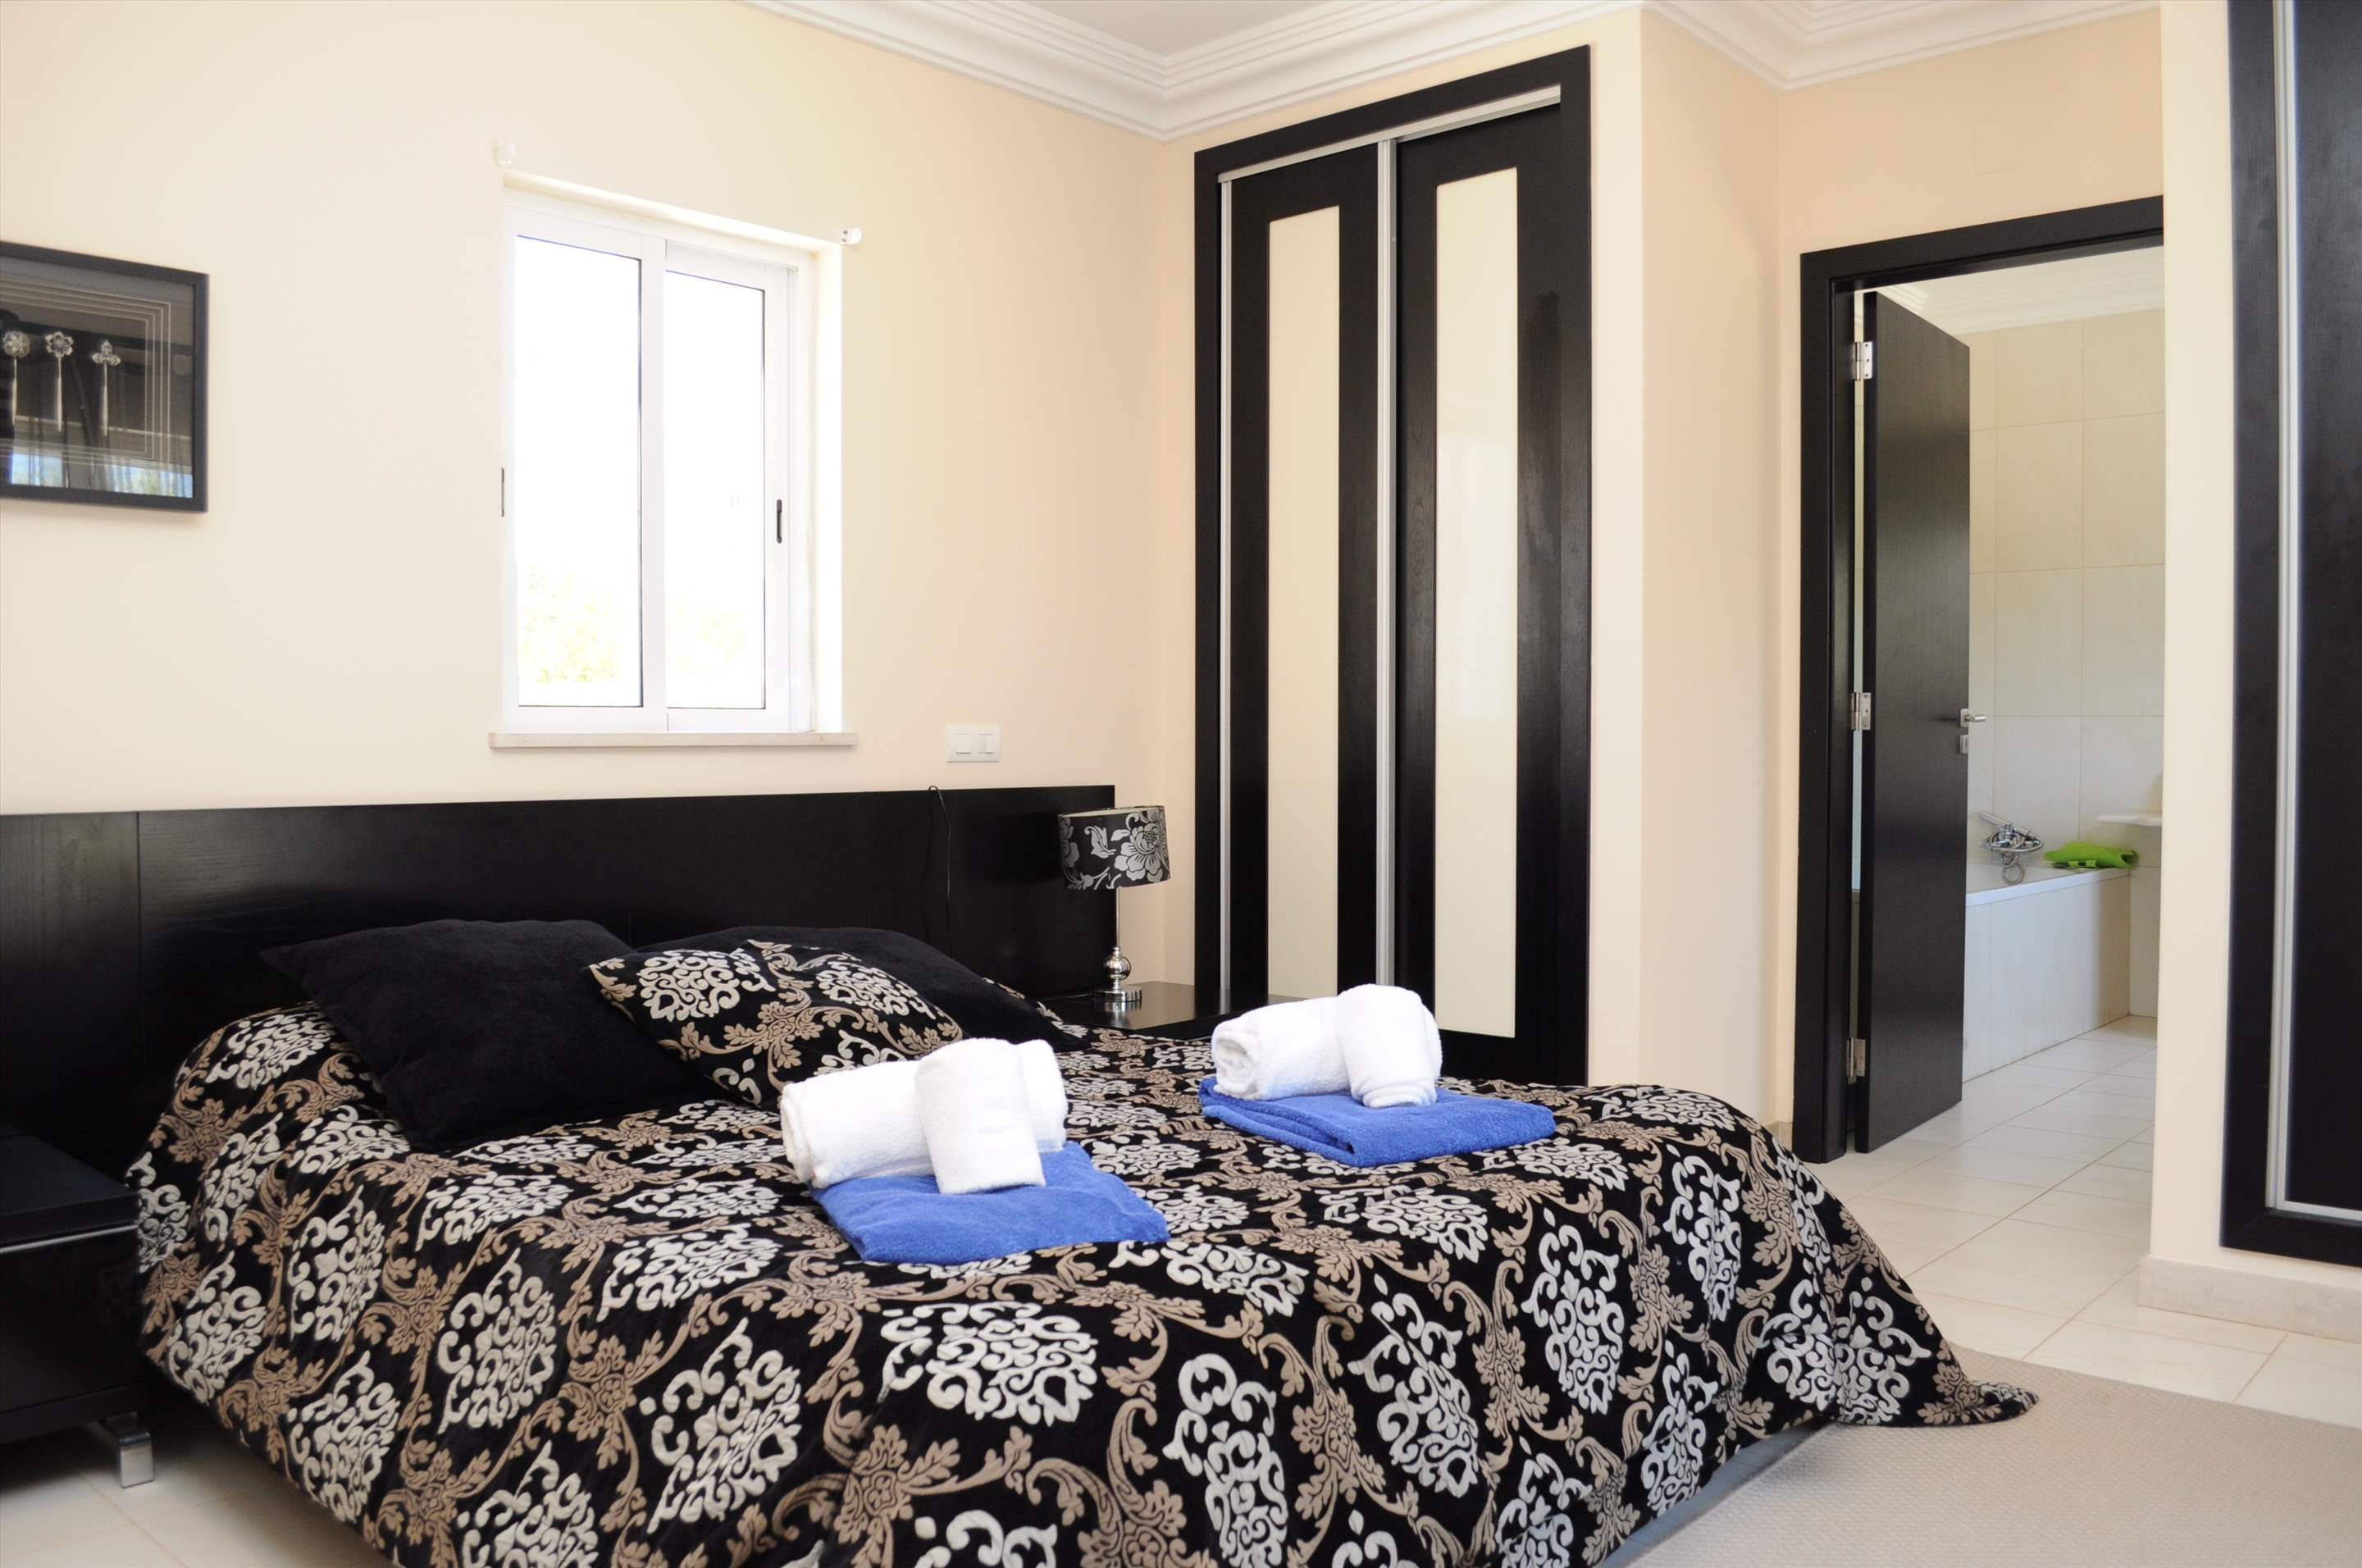 Martinhal Luxury Villa No.18, 5 bedroom villa in Martinhal Sagres, Algarve Photo #15